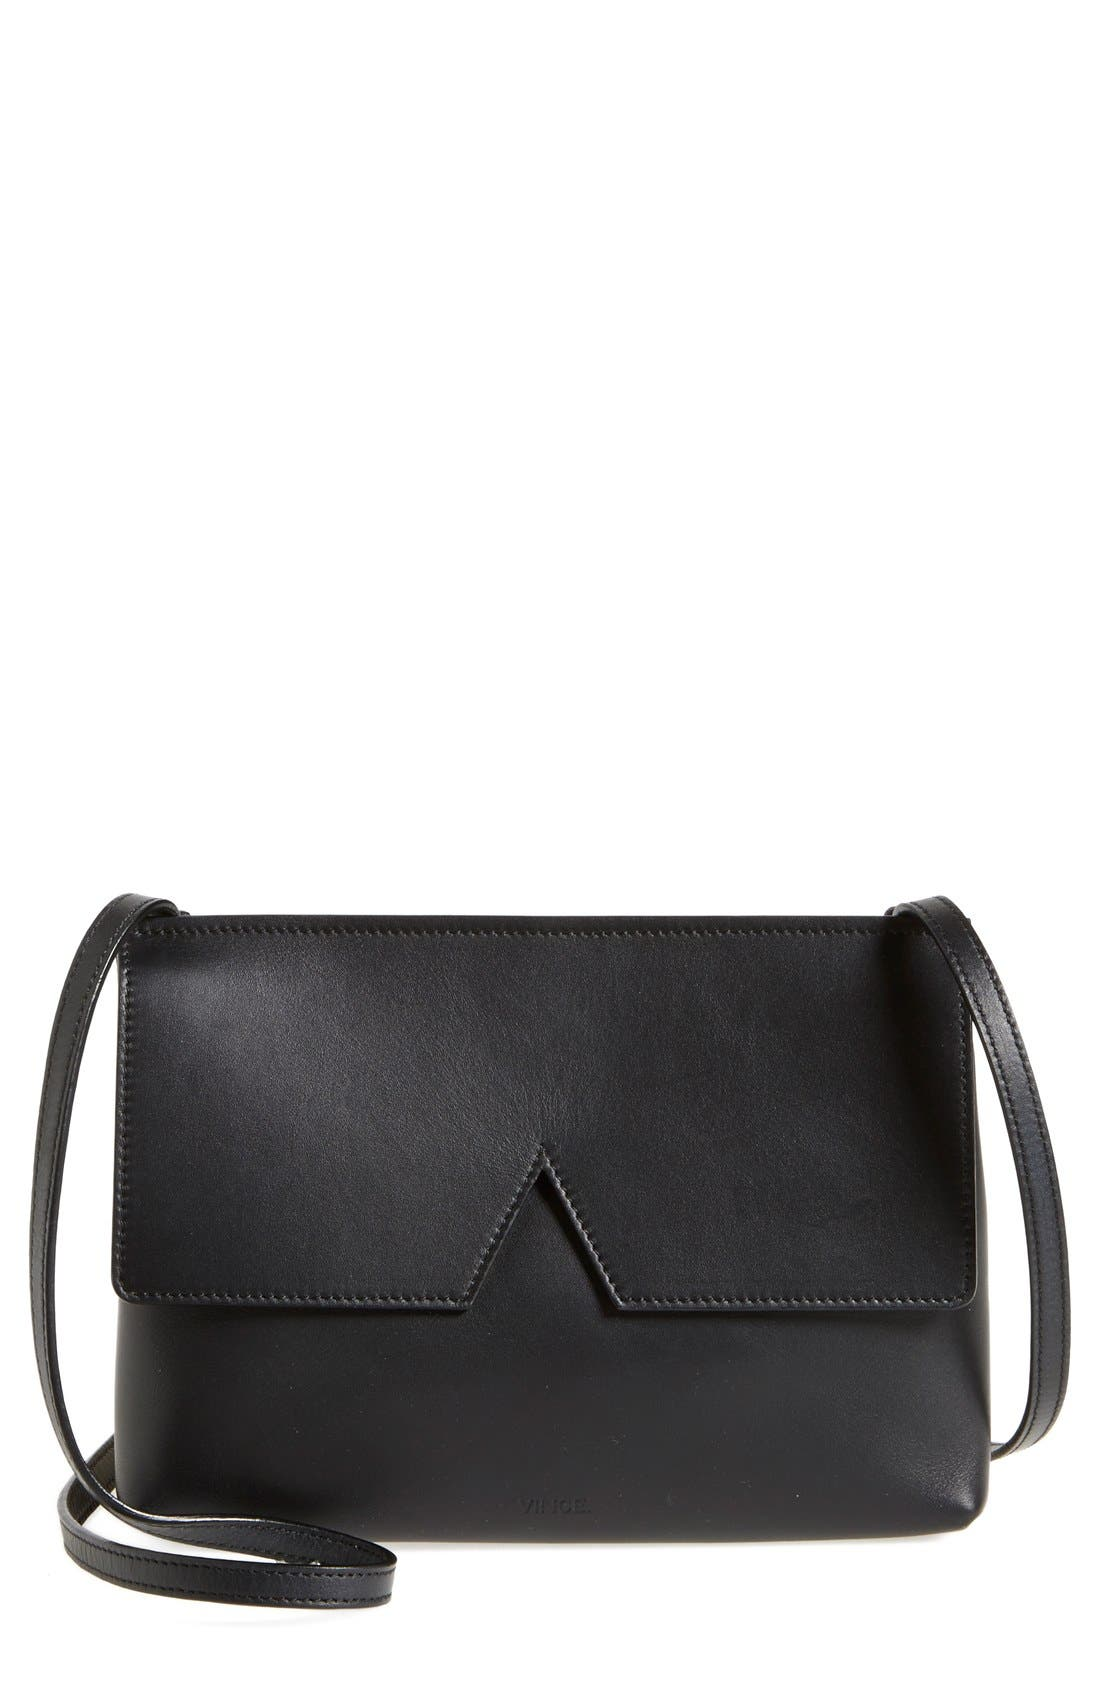 'Signature Collection - Small' Leather Crossbody Bag,                             Main thumbnail 1, color,                             Black